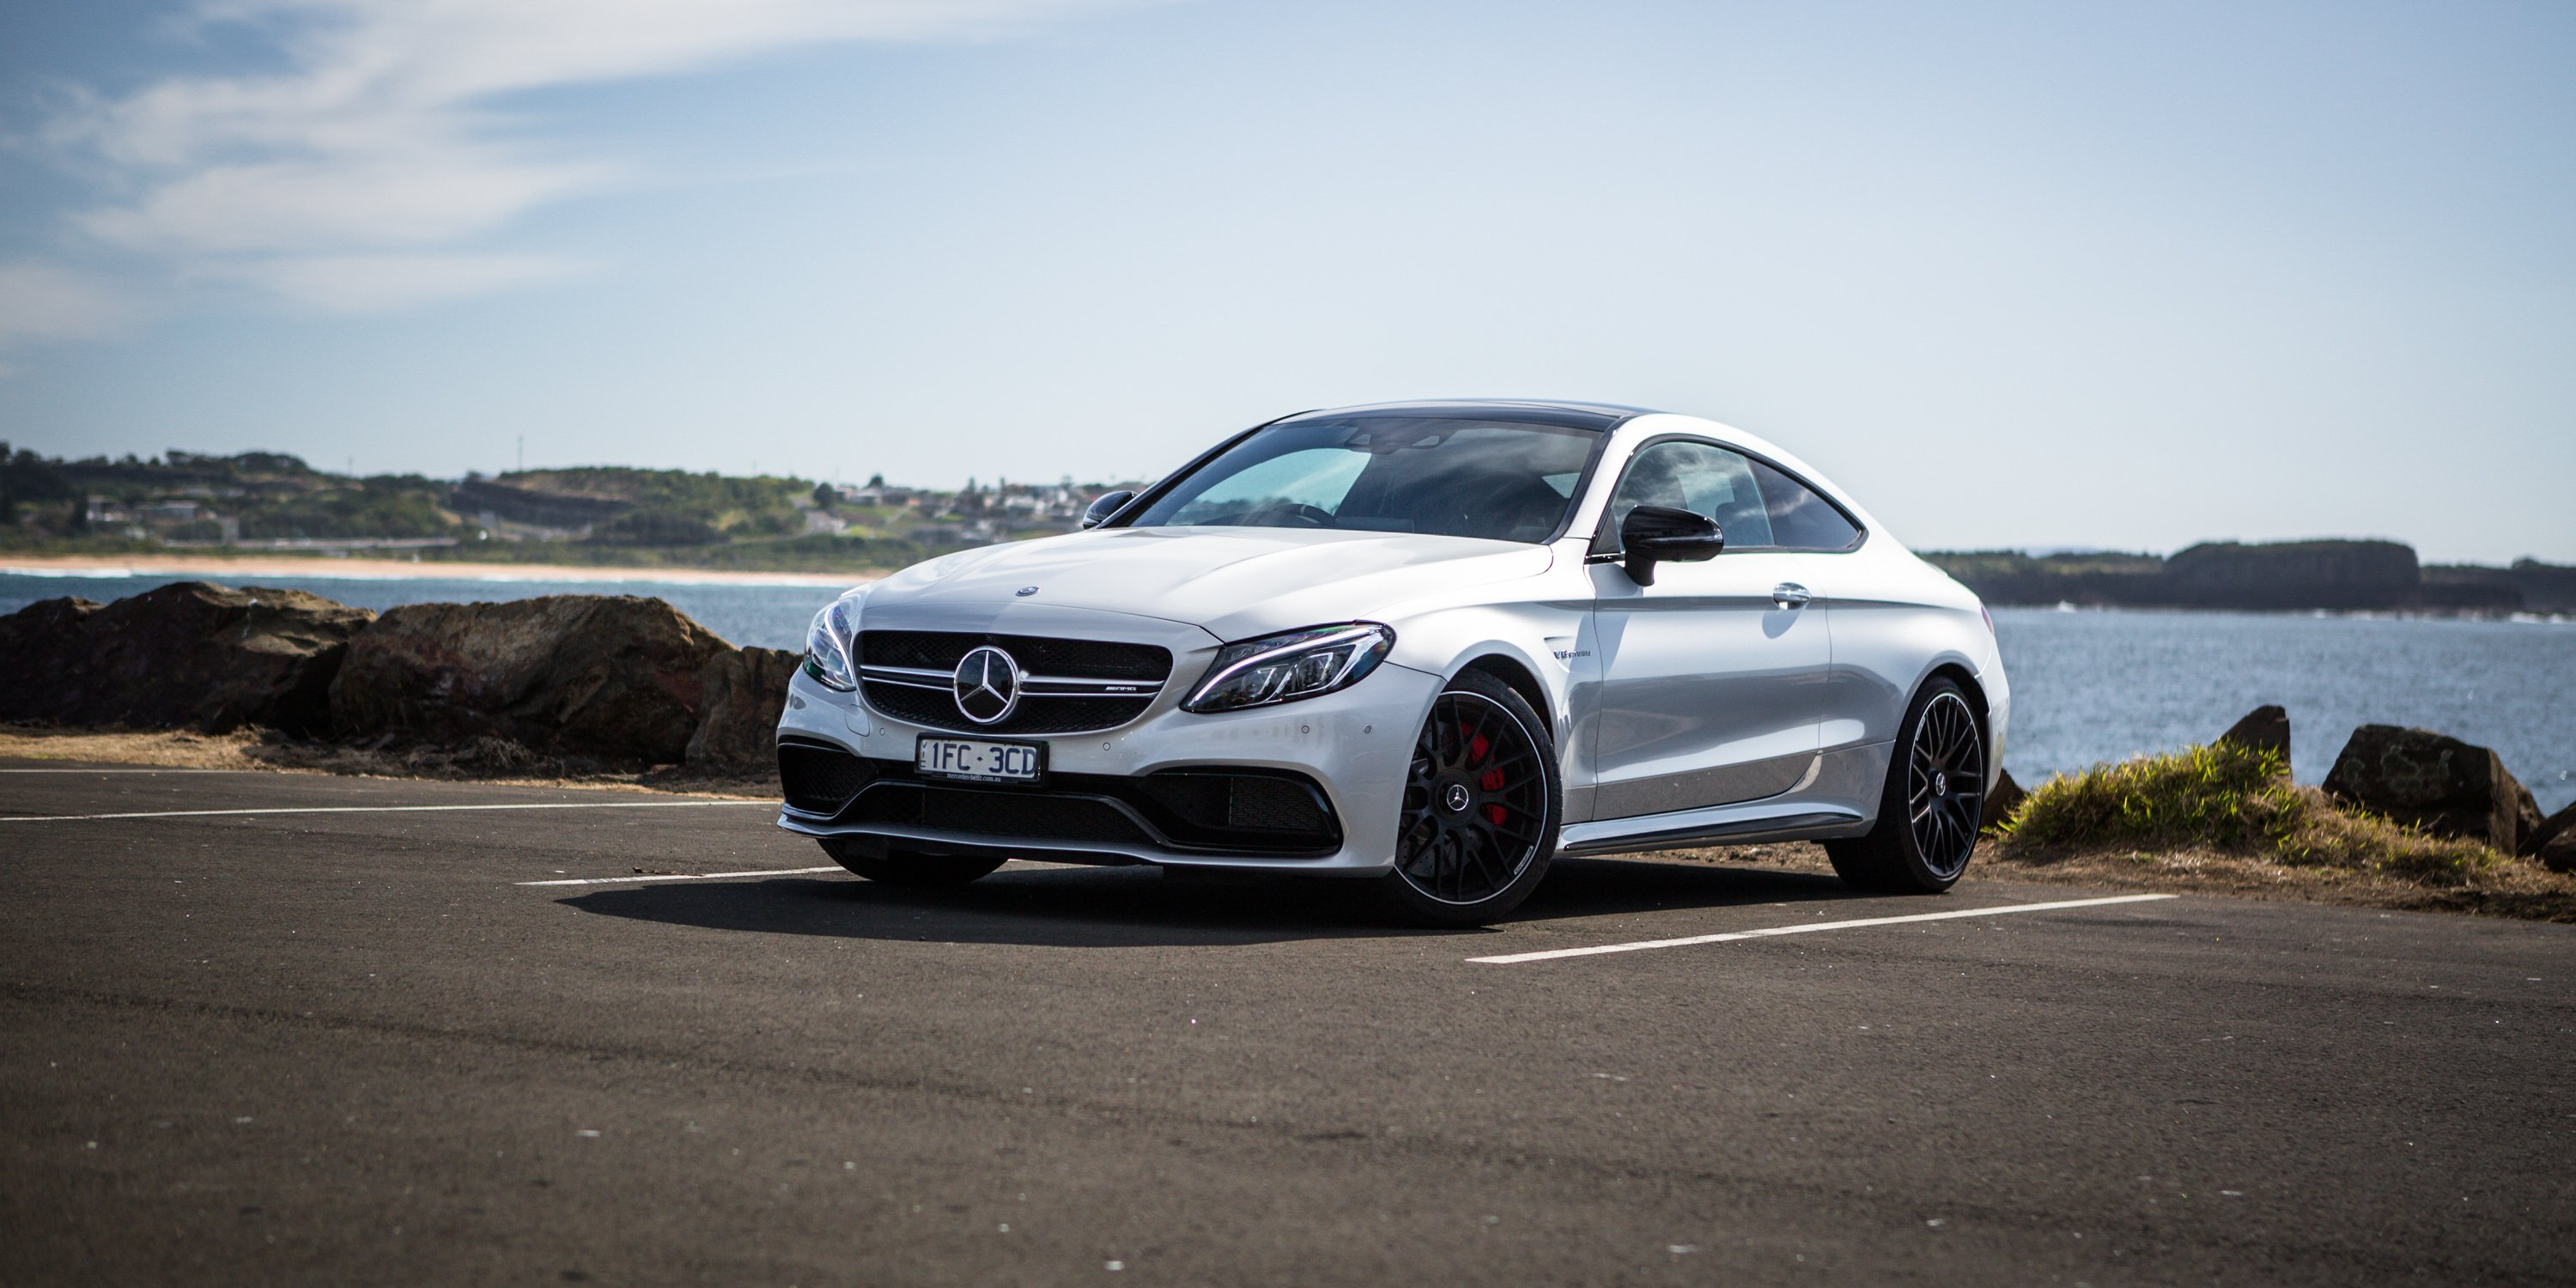 2016 mercedes amg c63 s coupe review photos caradvice for 2016 mercedes benz amg e 63 sedan